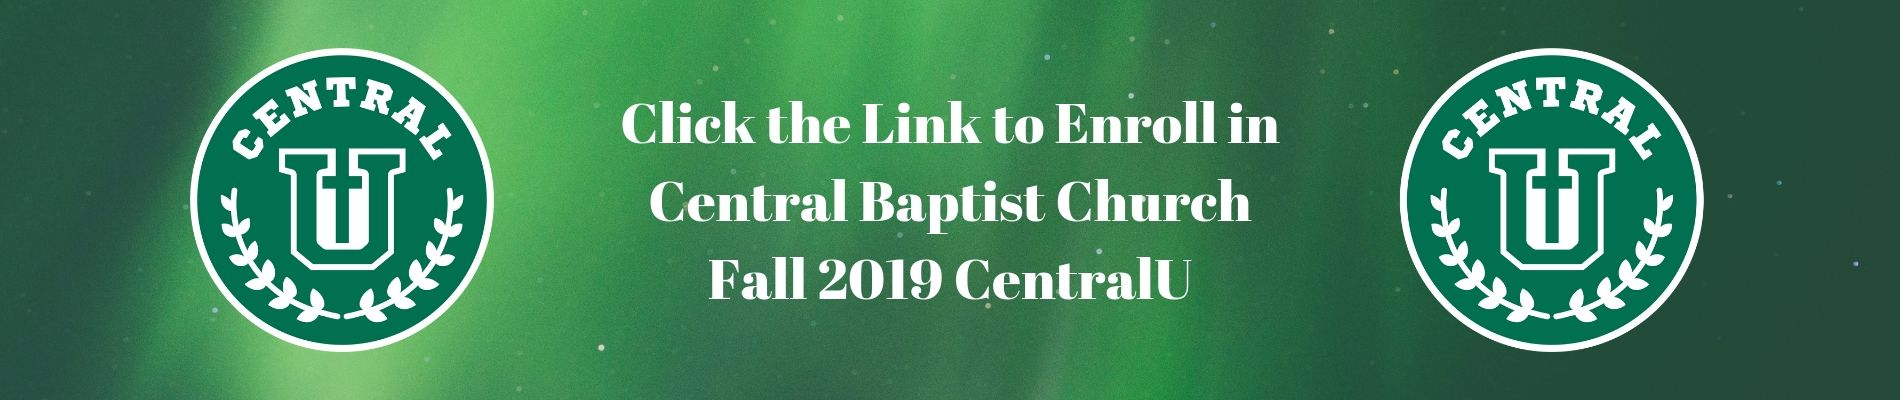 Click the Link to Enroll in Central Baptist Church Fall 2019 CentralU